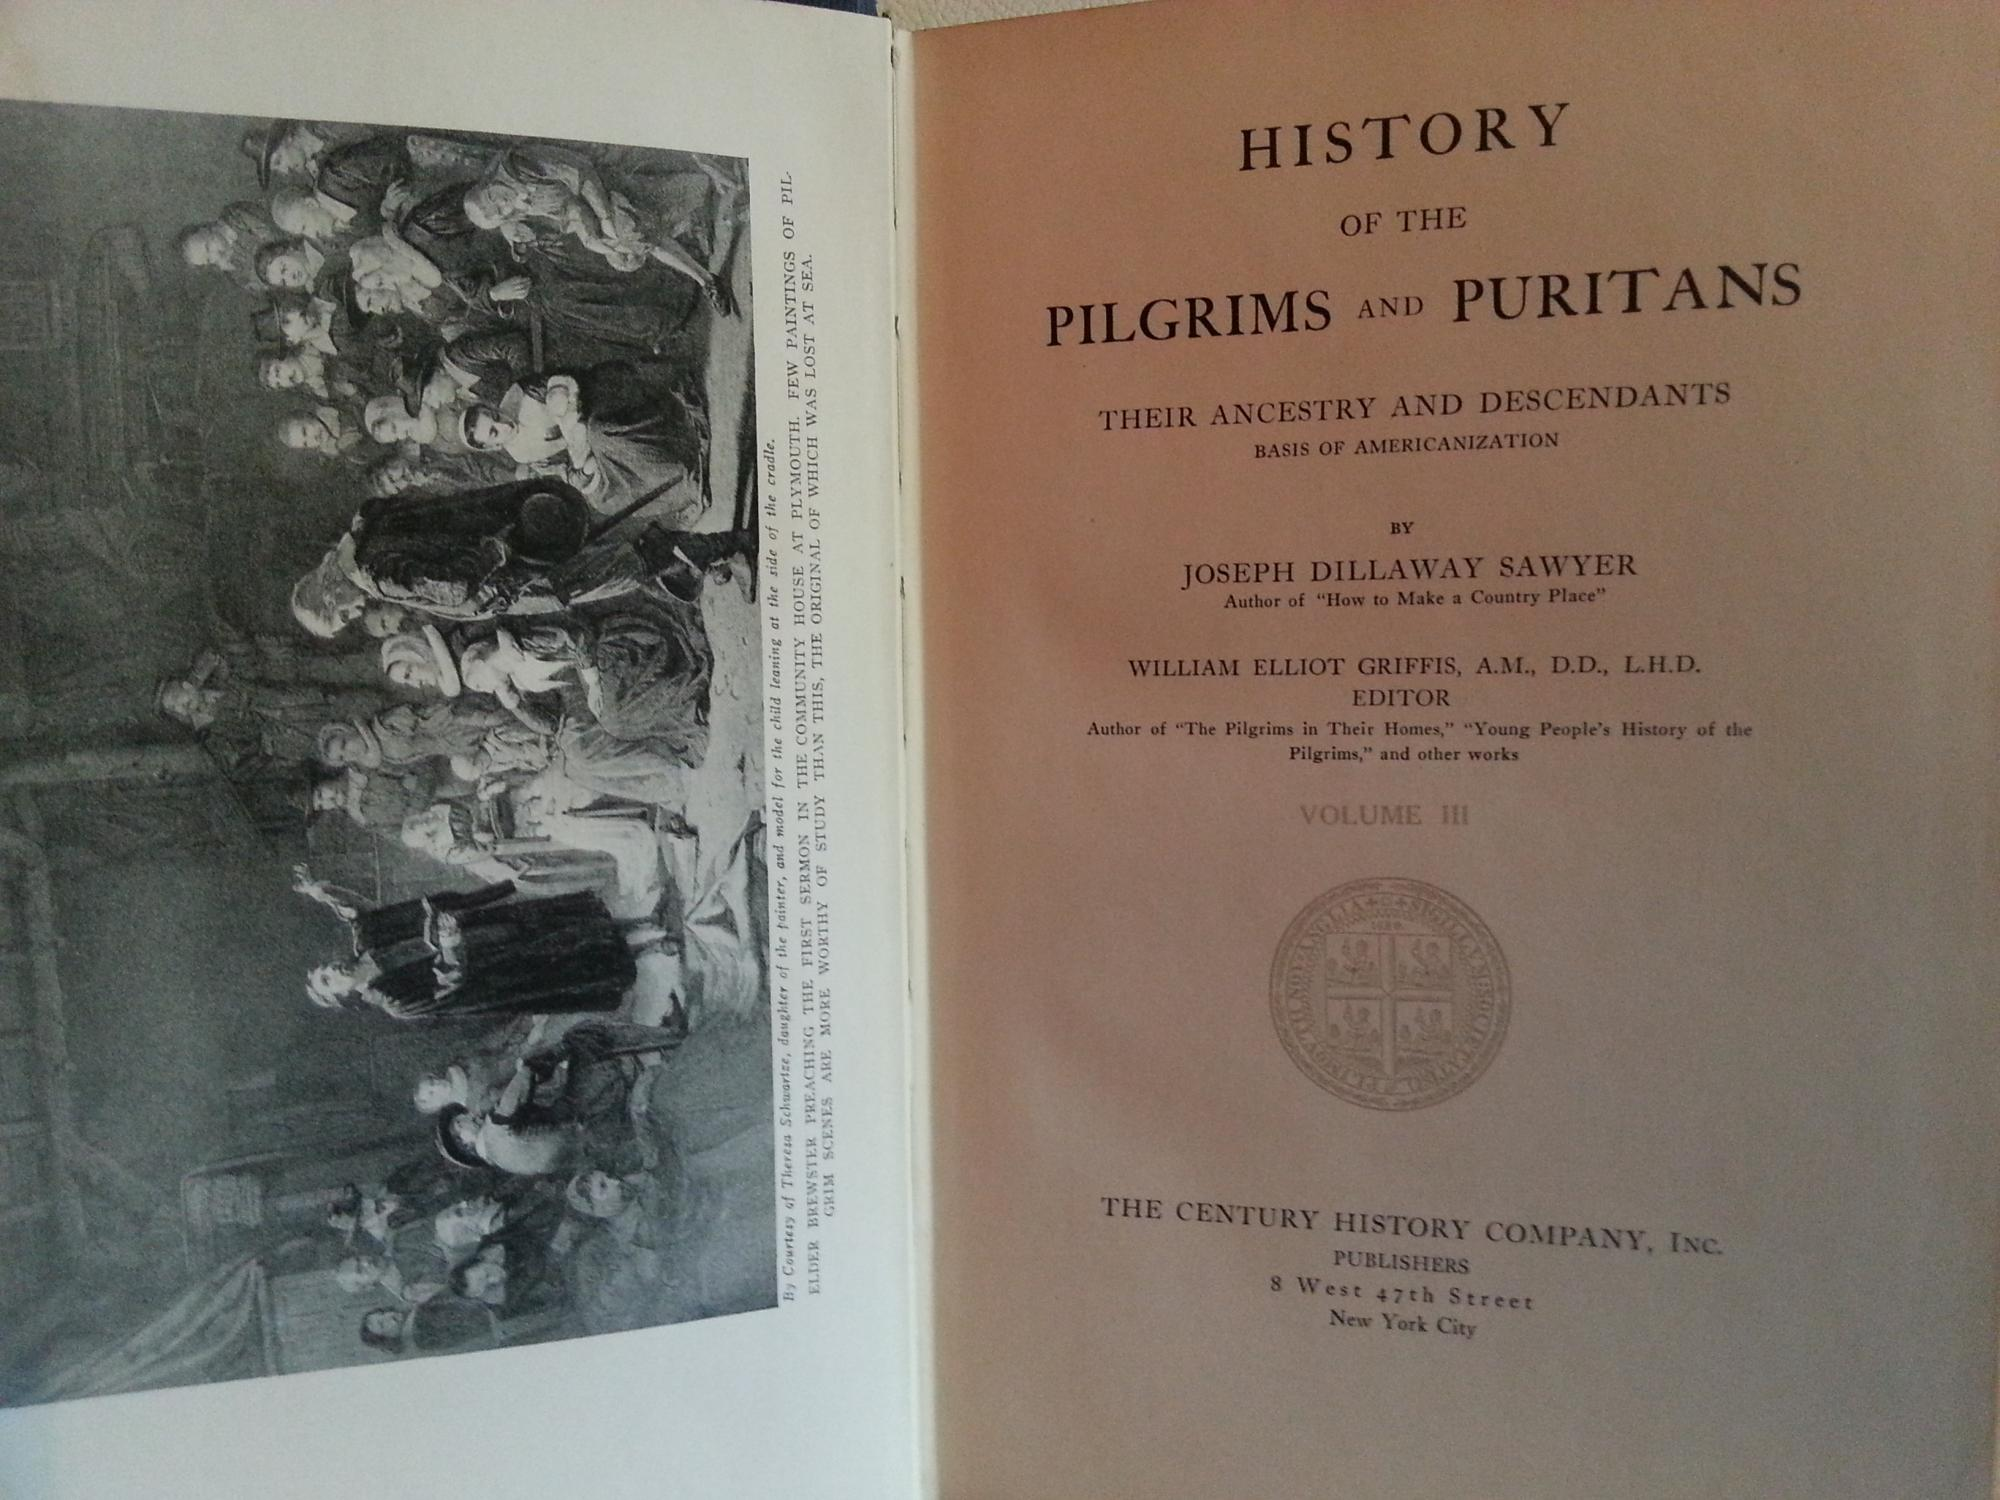 History of the PILGRIMS and PURITANS: Their